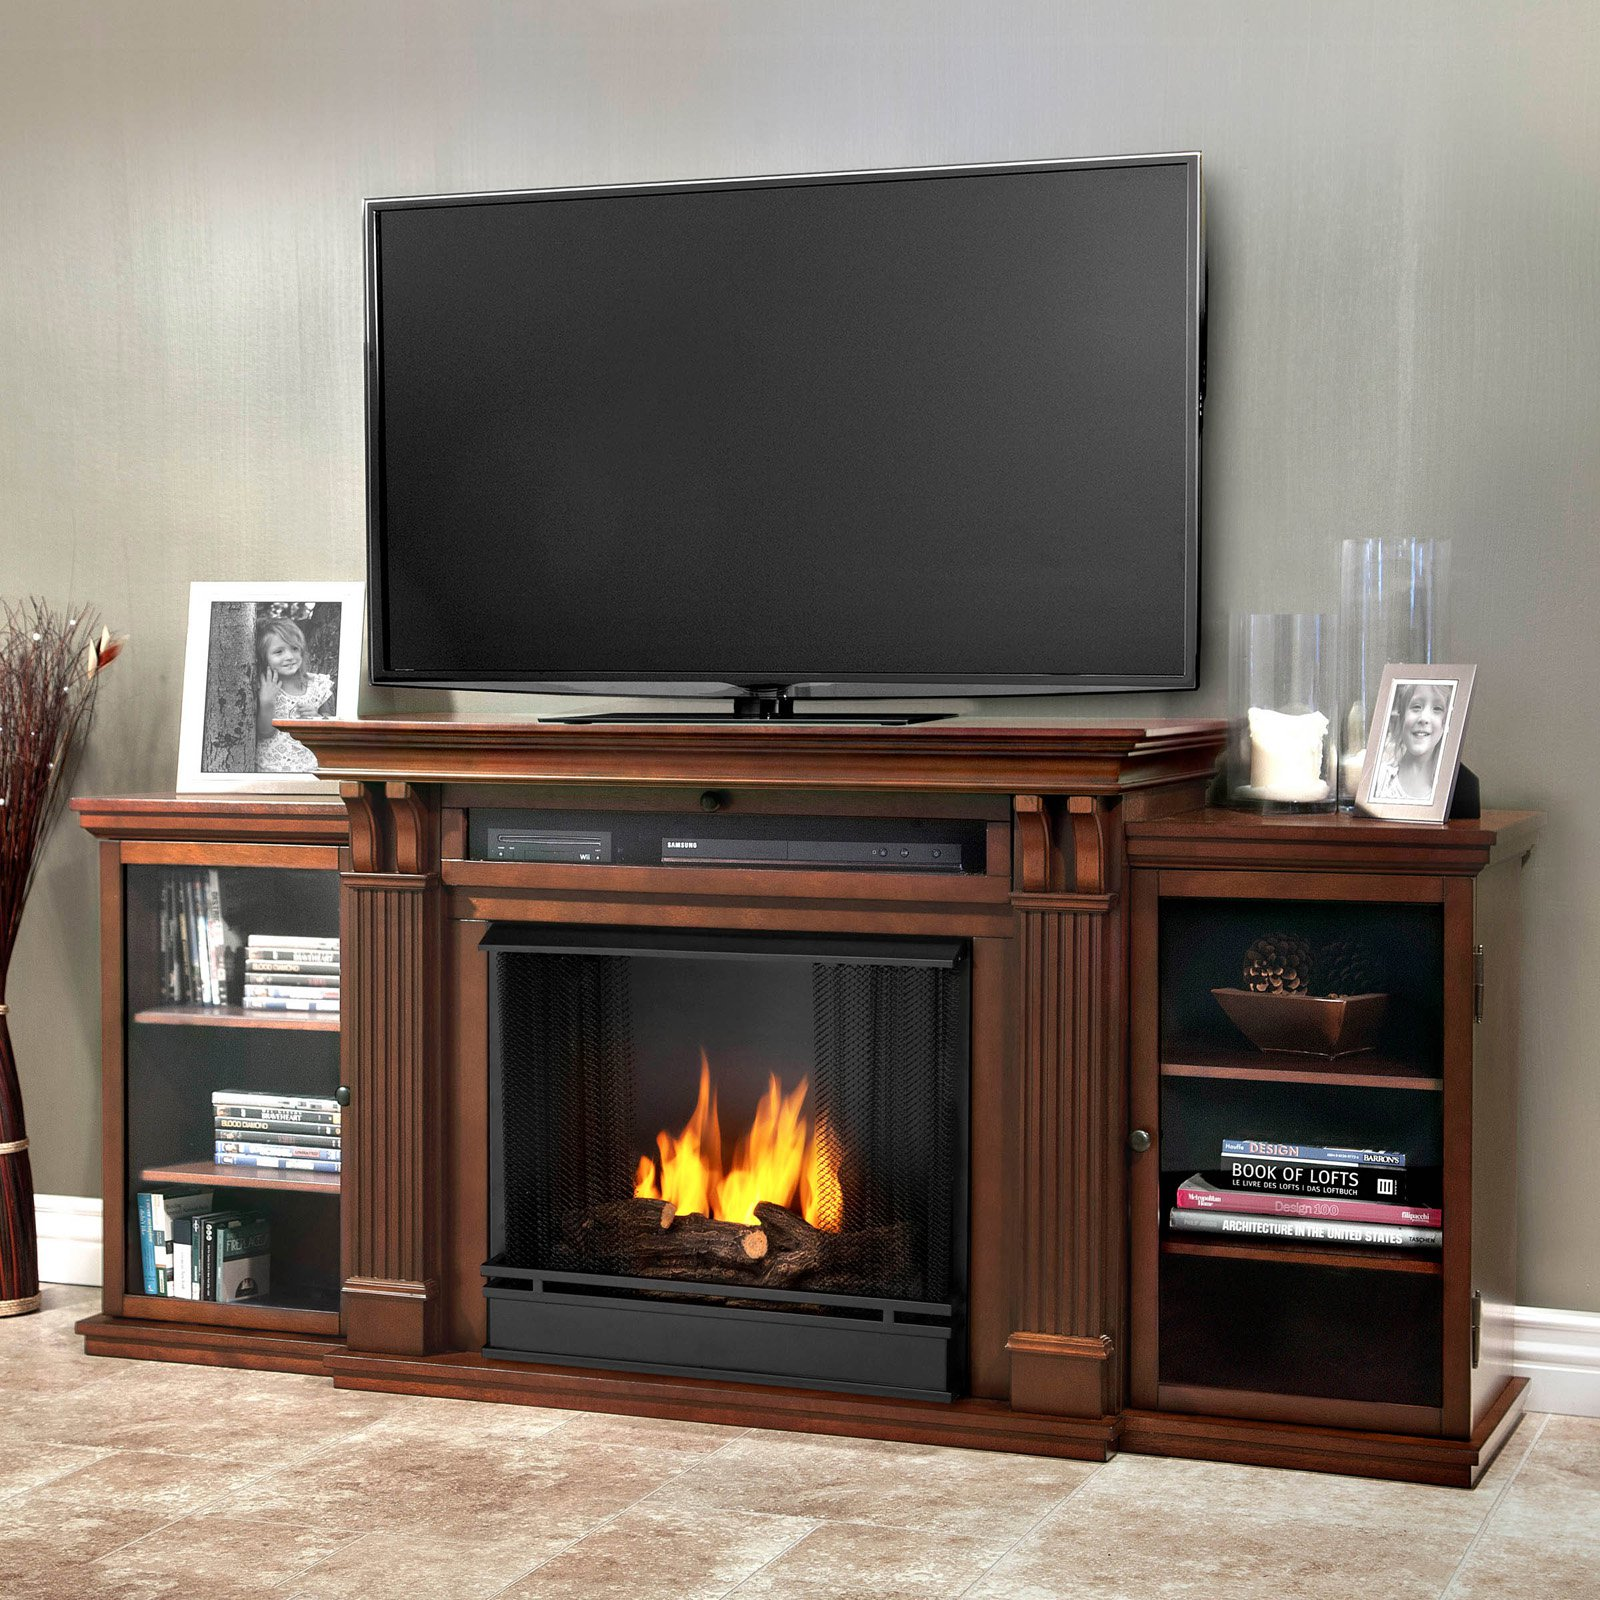 Real Flame Calie Entertainment Center Ventless Gel Fireplace - Dark Espresso